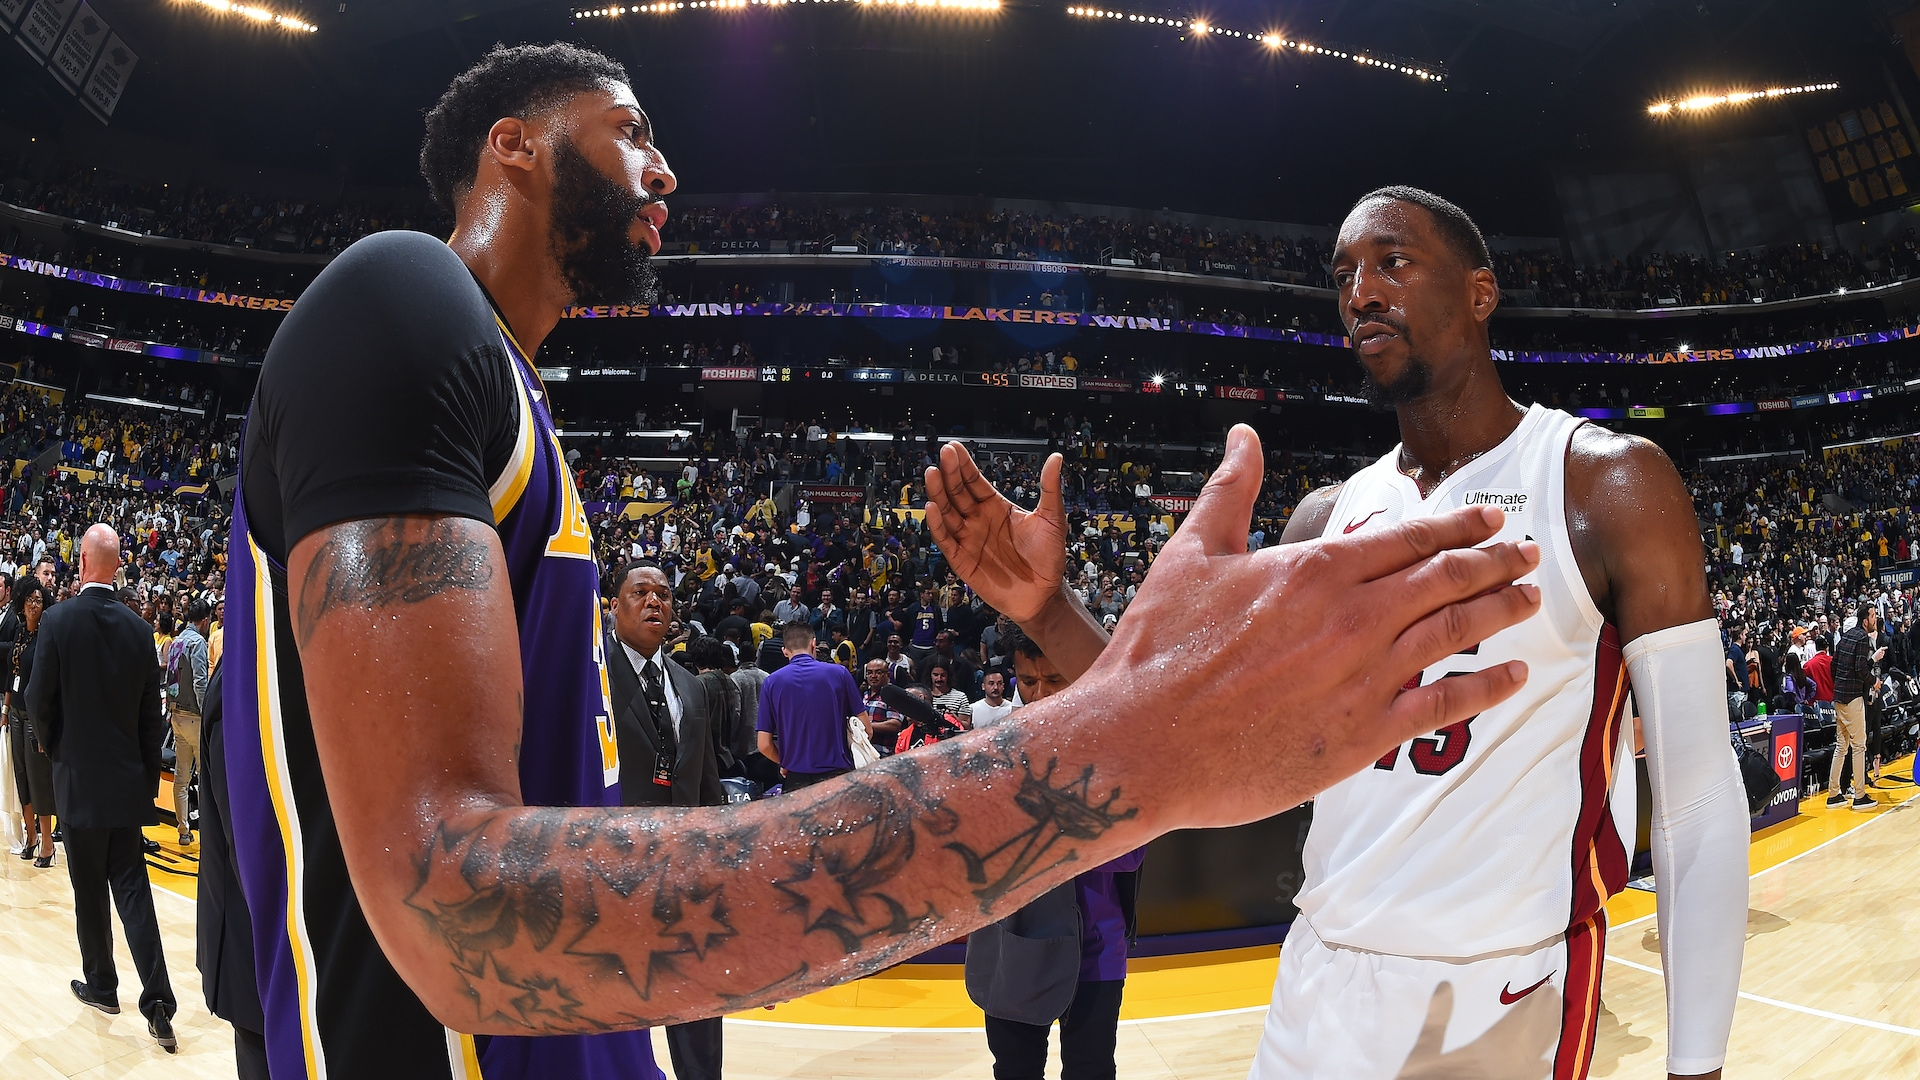 Numbers preview: The Finals -- Los Angeles Lakers vs. Miami Heat